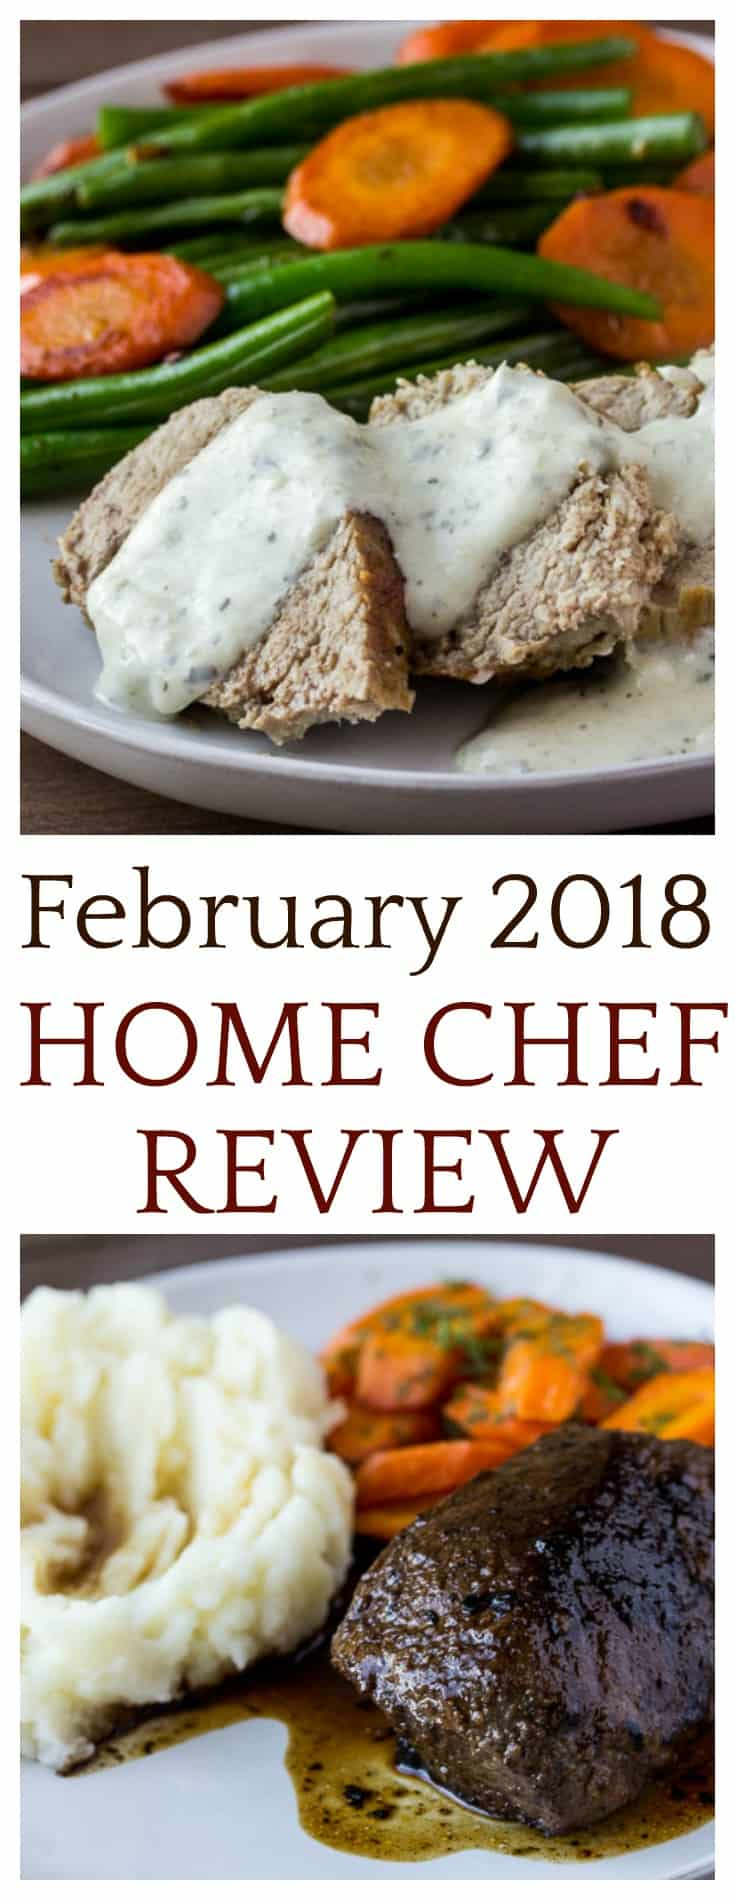 Check out the 4 meals and one smoothie in this February 2018 Home Chef review! It's my favorite meal kit subscription box so far! There is also a link to save $30 on your first order! | #homechef #homechefreview #subscriptionbox #mealkits